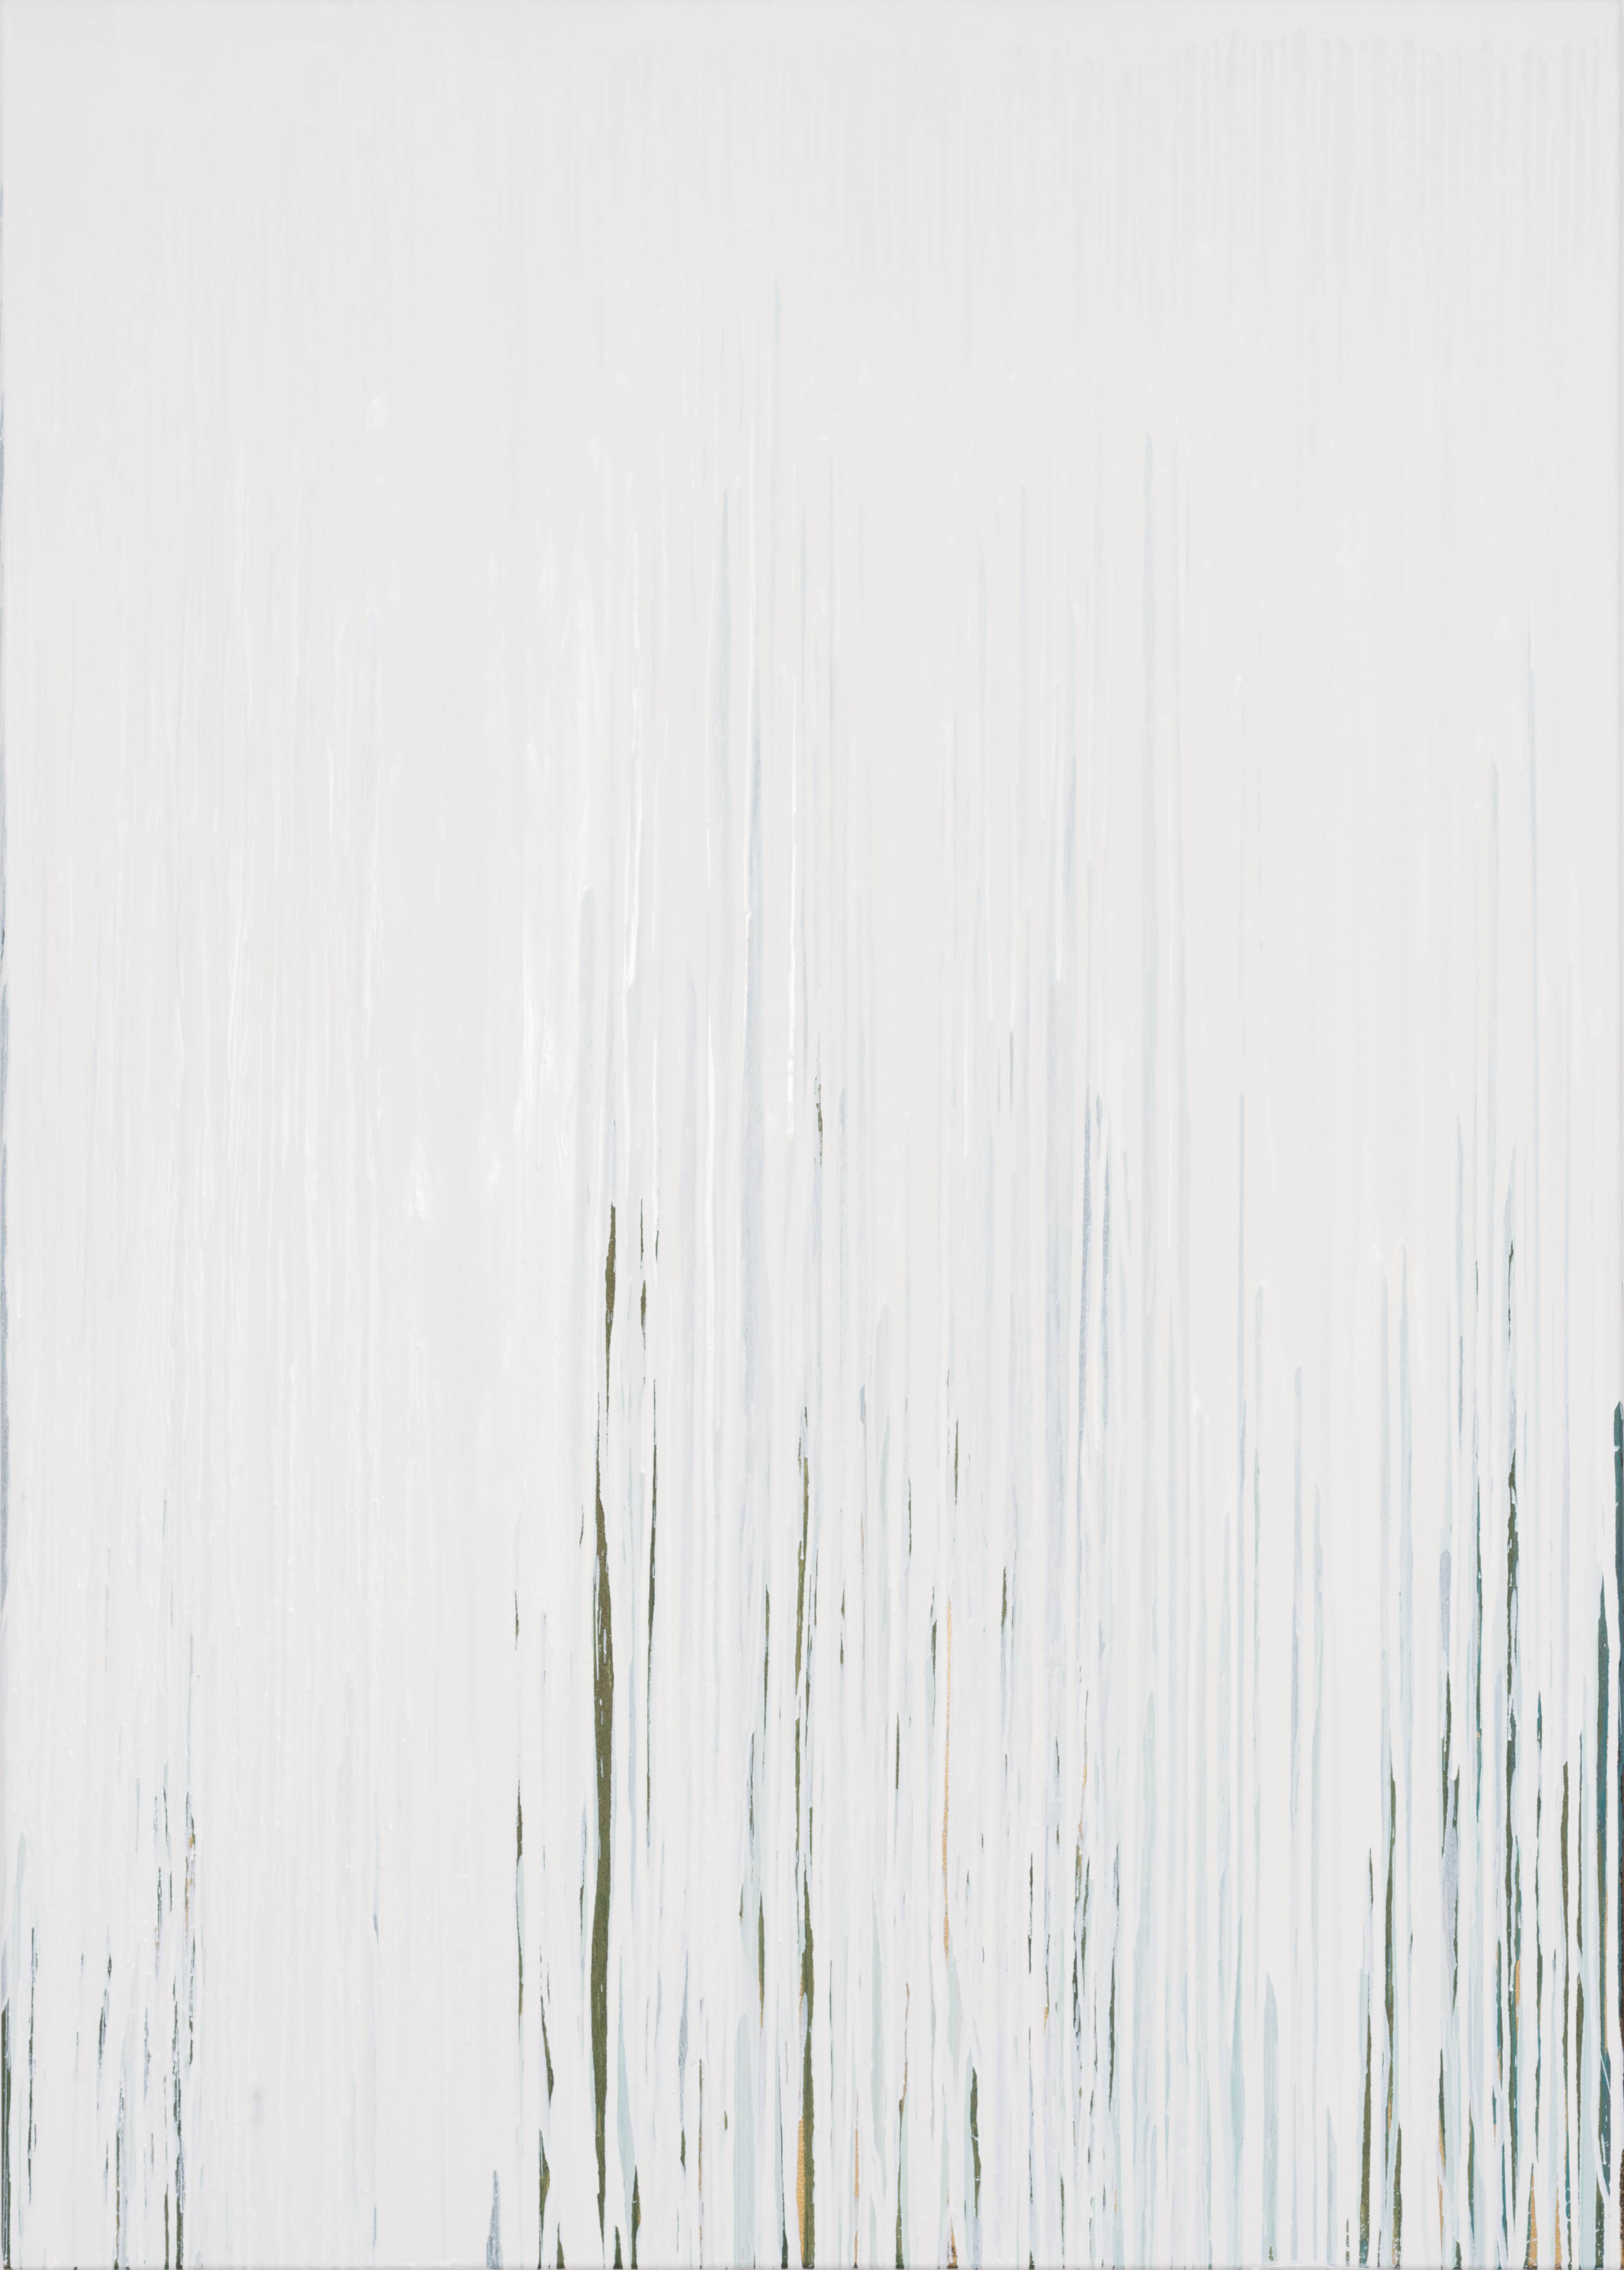 Joanna Borkowska Frequencies White 2014 oil and pigments on canvas 140 x 100 cm